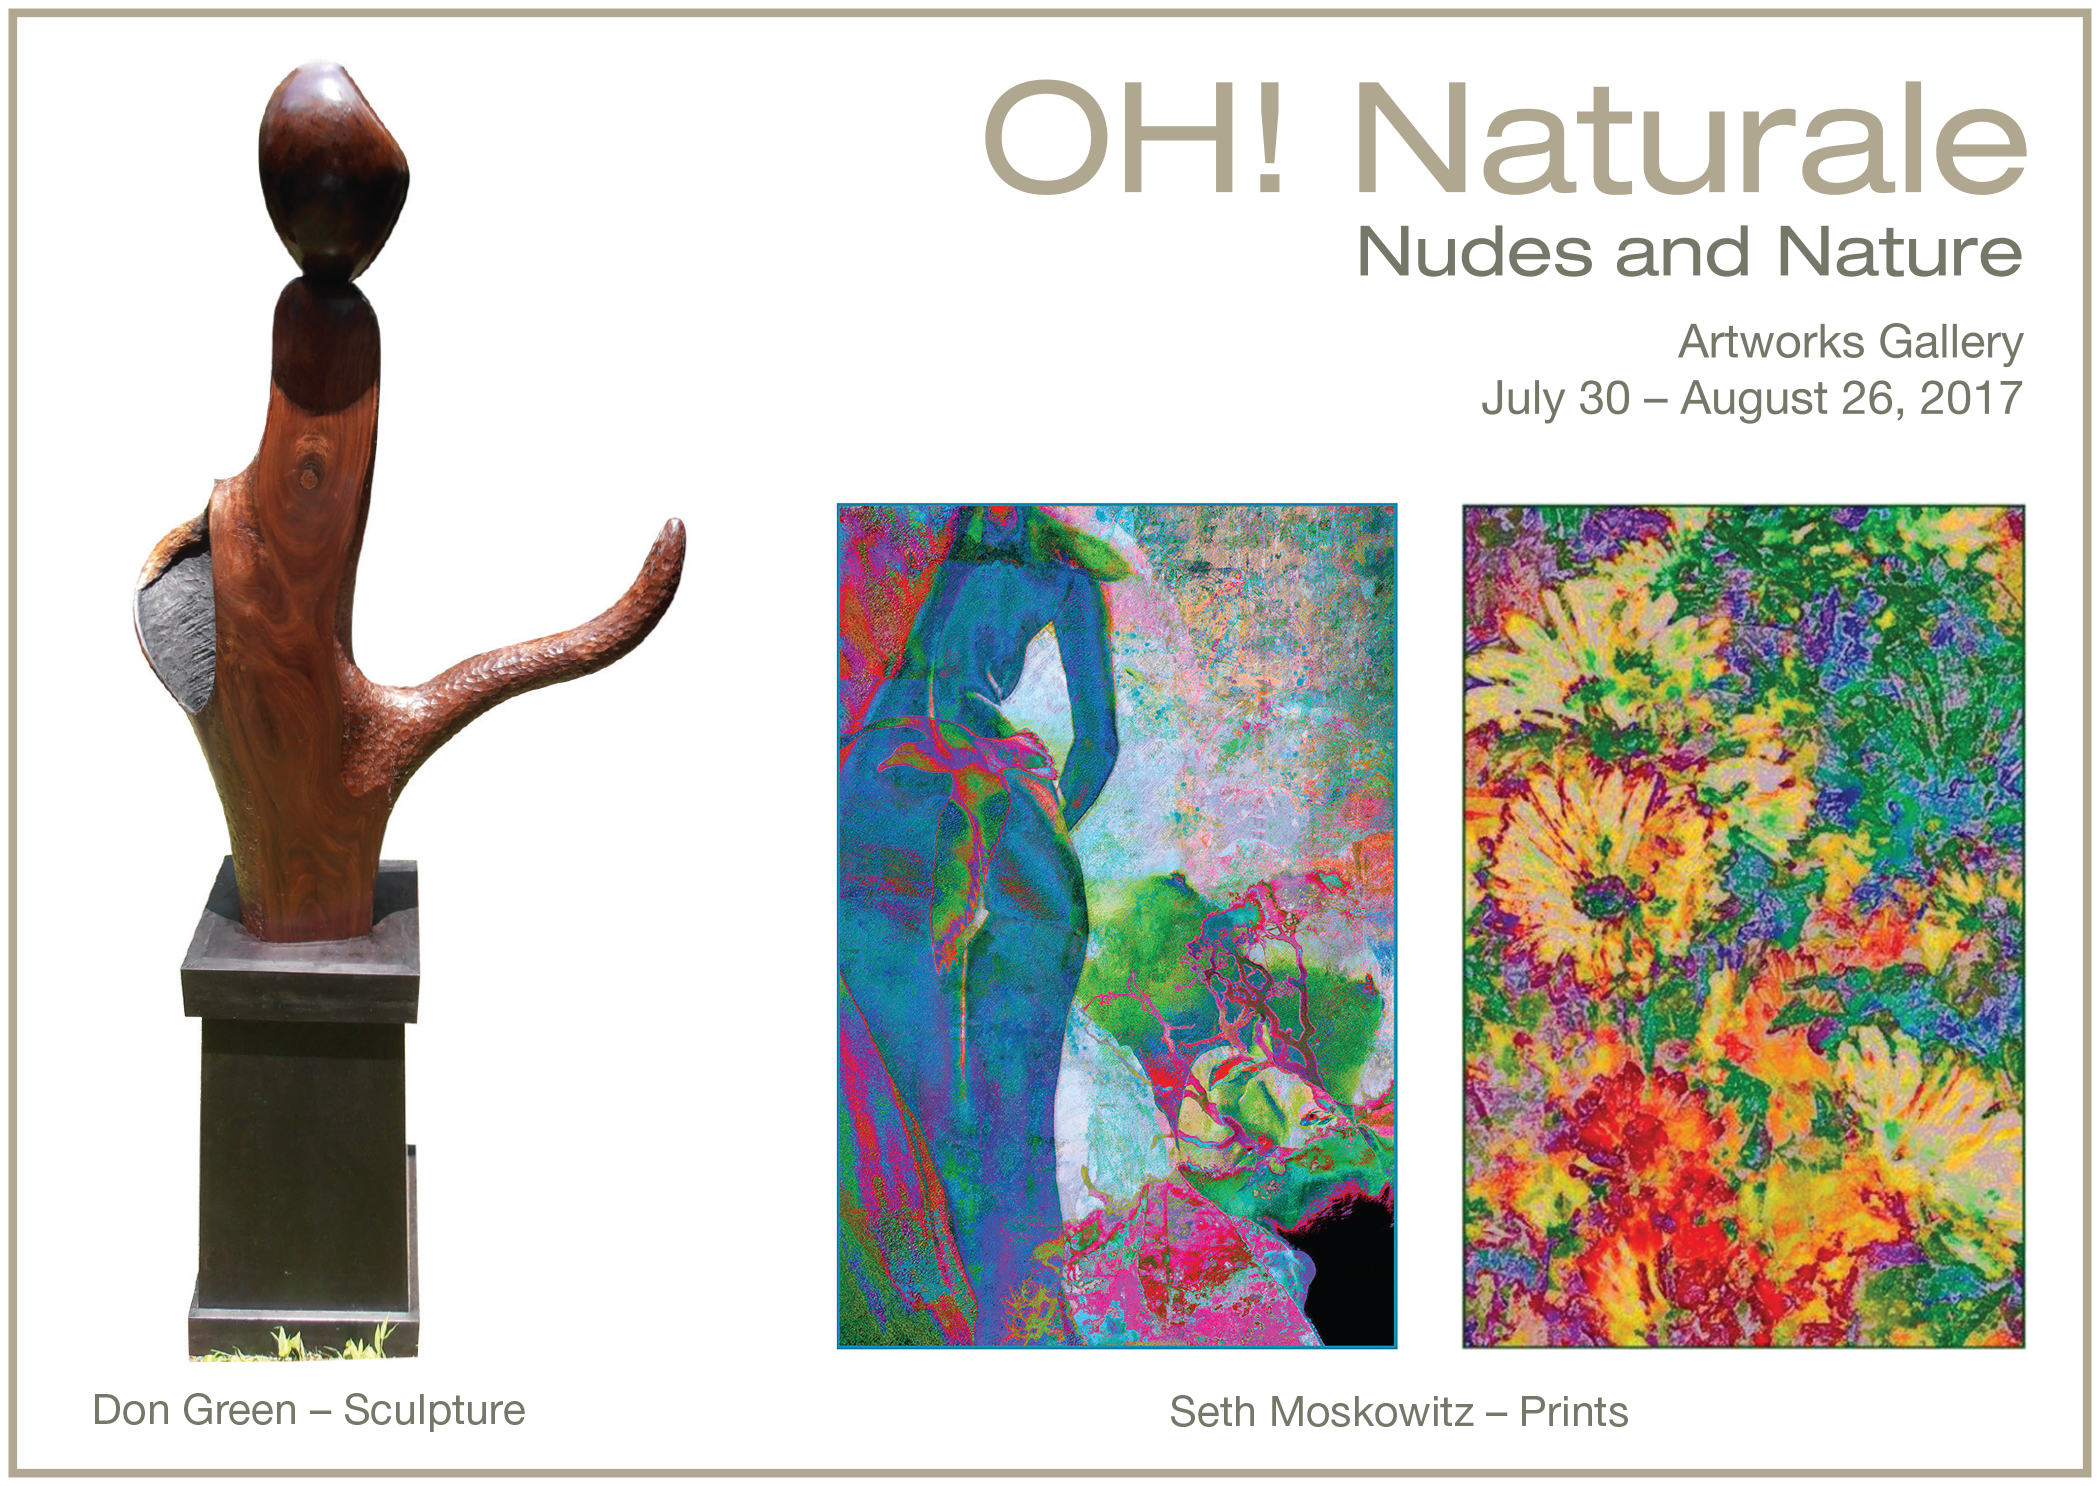 OH! Naturale: Nudes and Nature